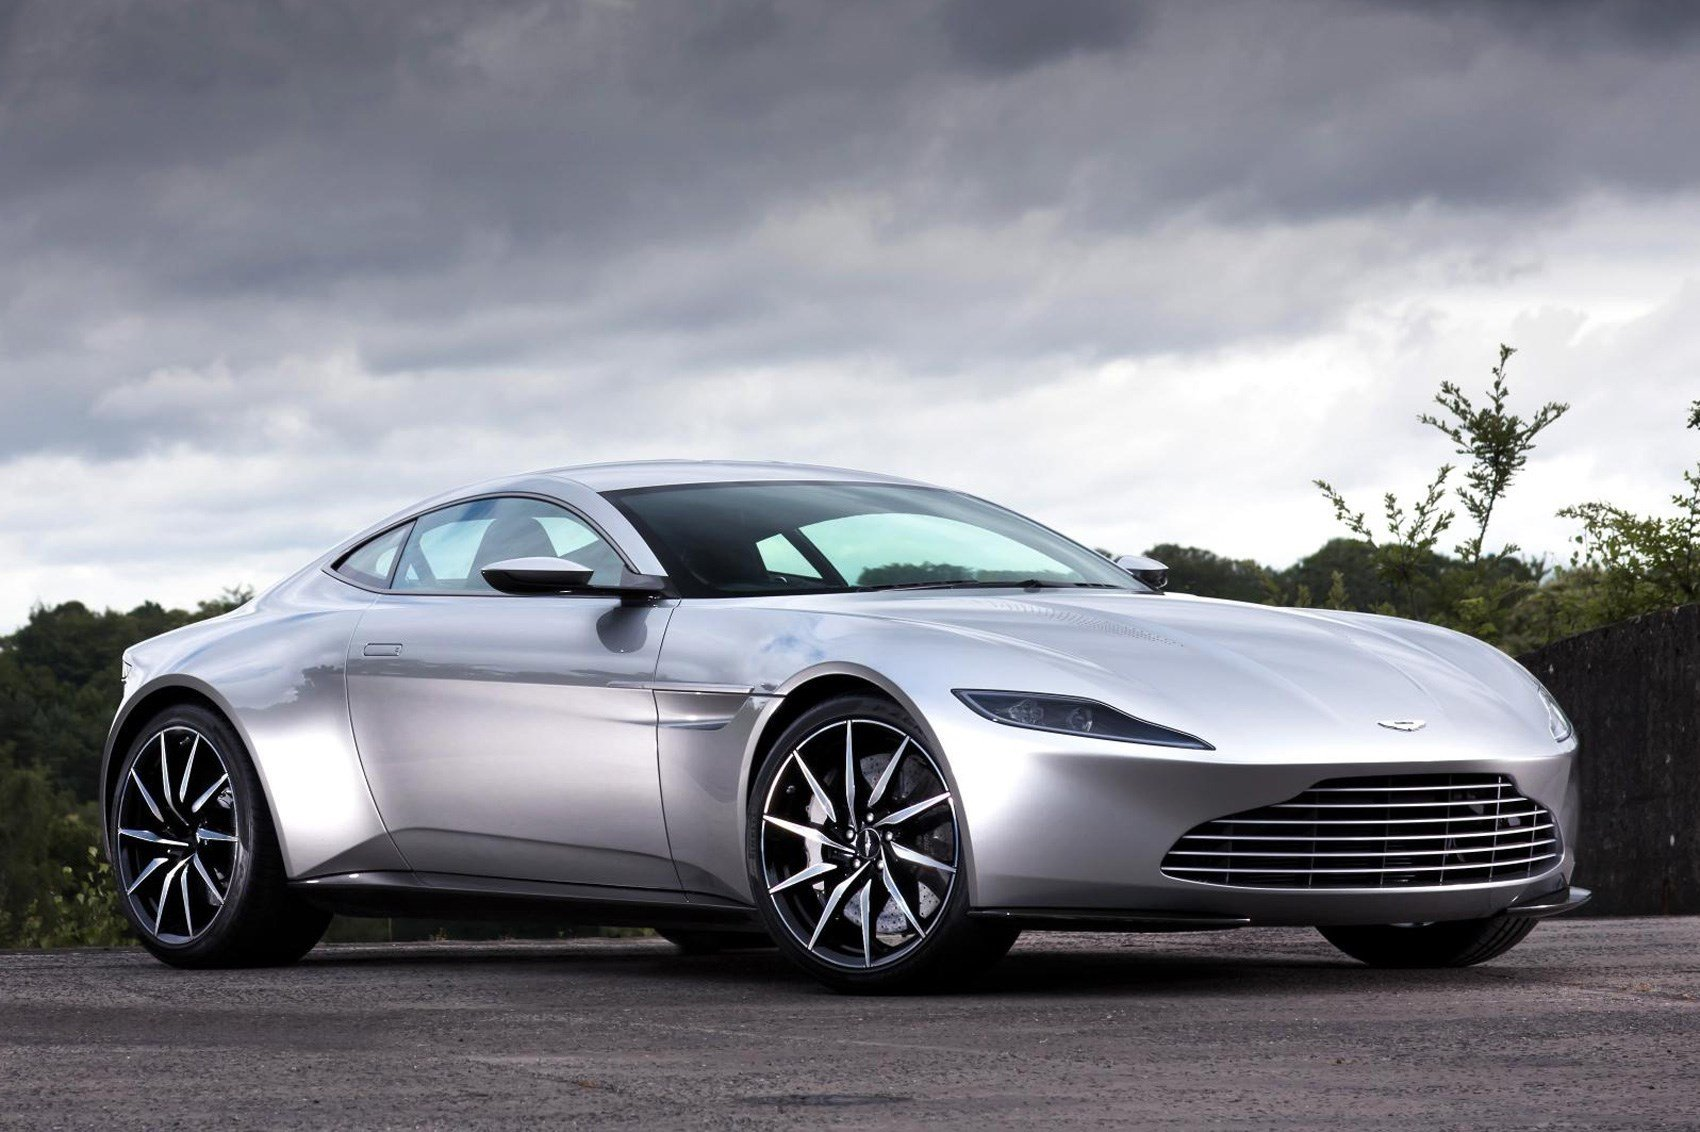 Latest New 2018 Aston Martin Vantage Pics Specs Prices Car Free Download